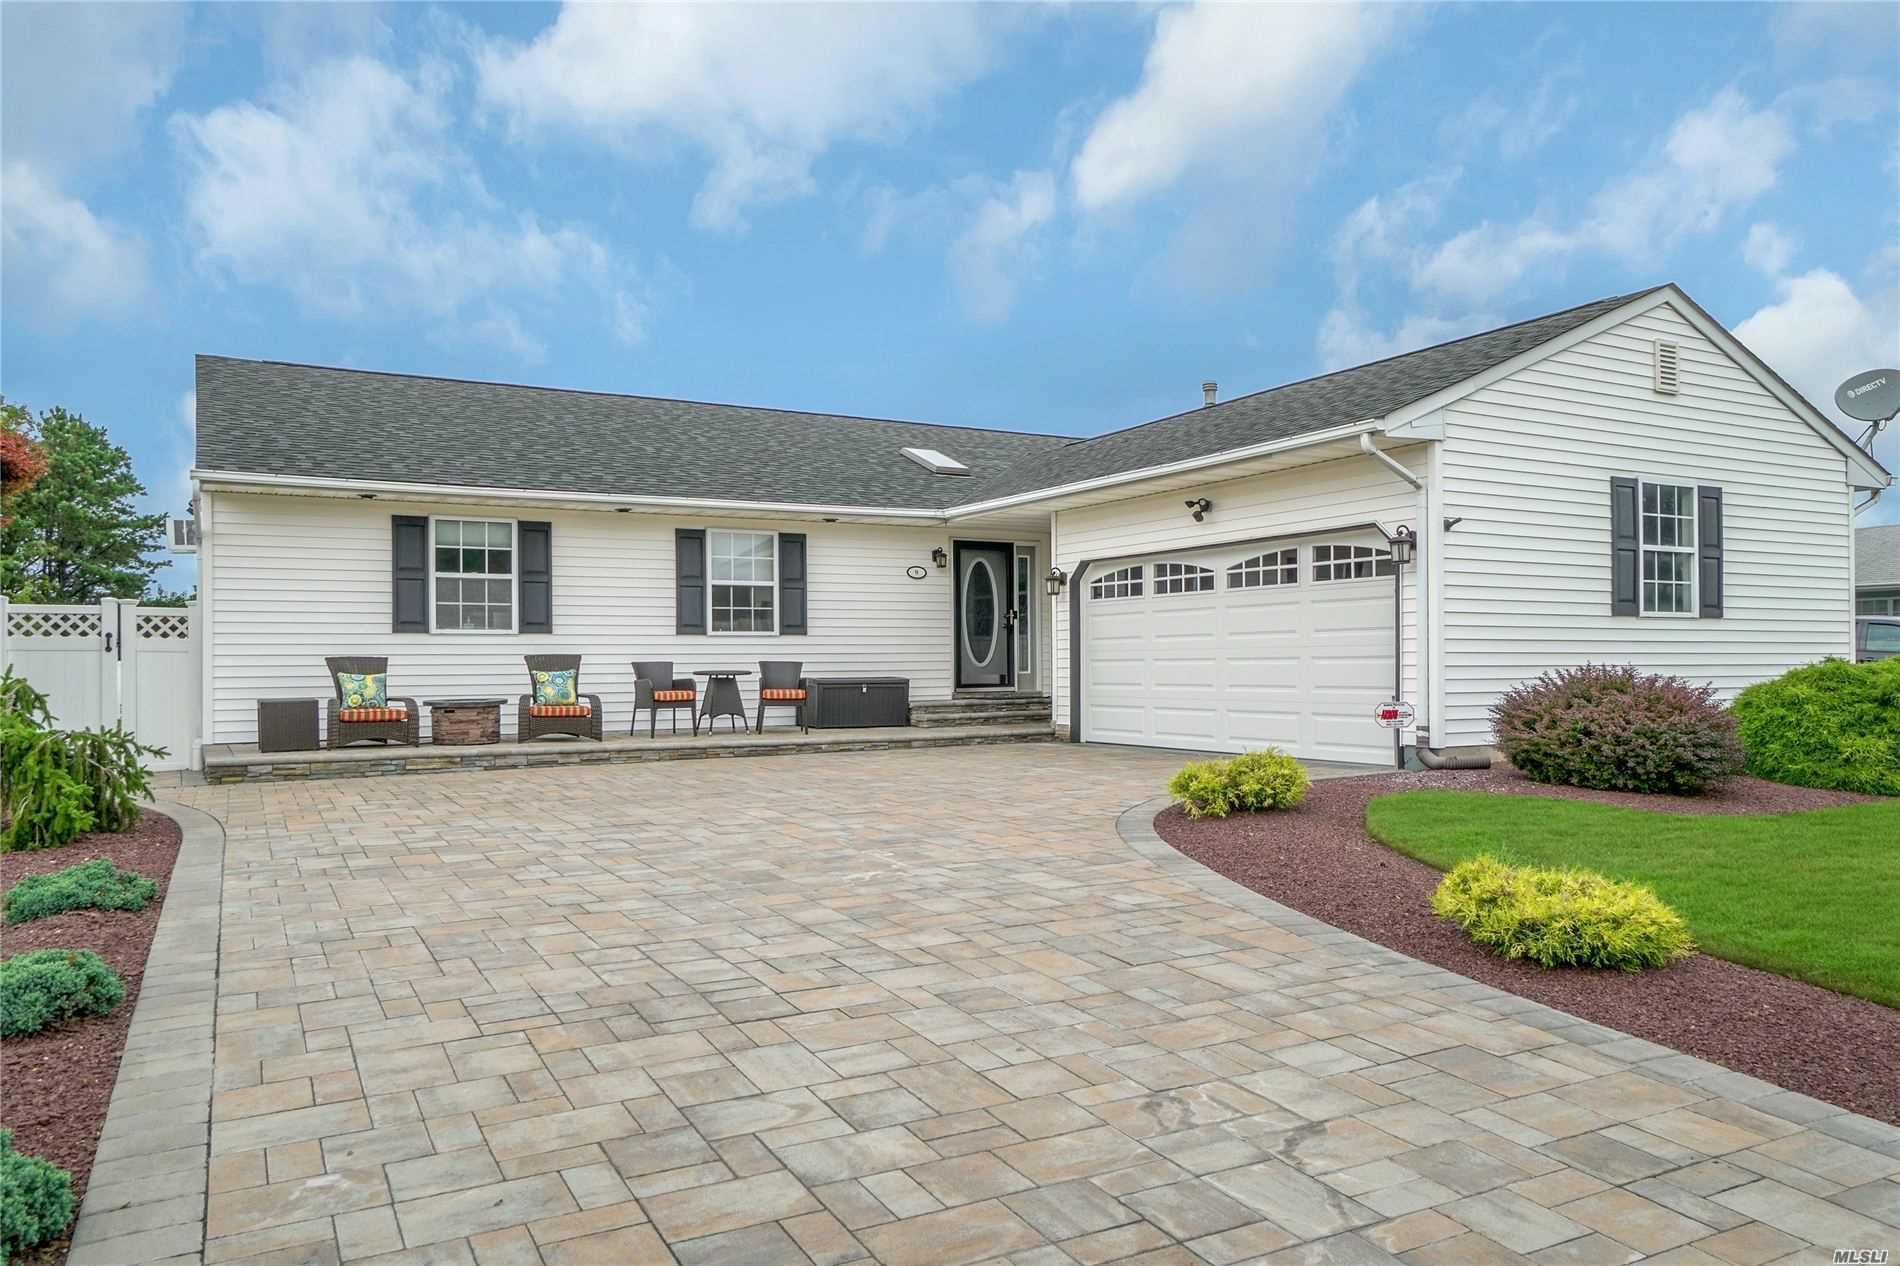 9 Sunbonnet Ln, Bellport, NY 11713 - MLS#: 3241456